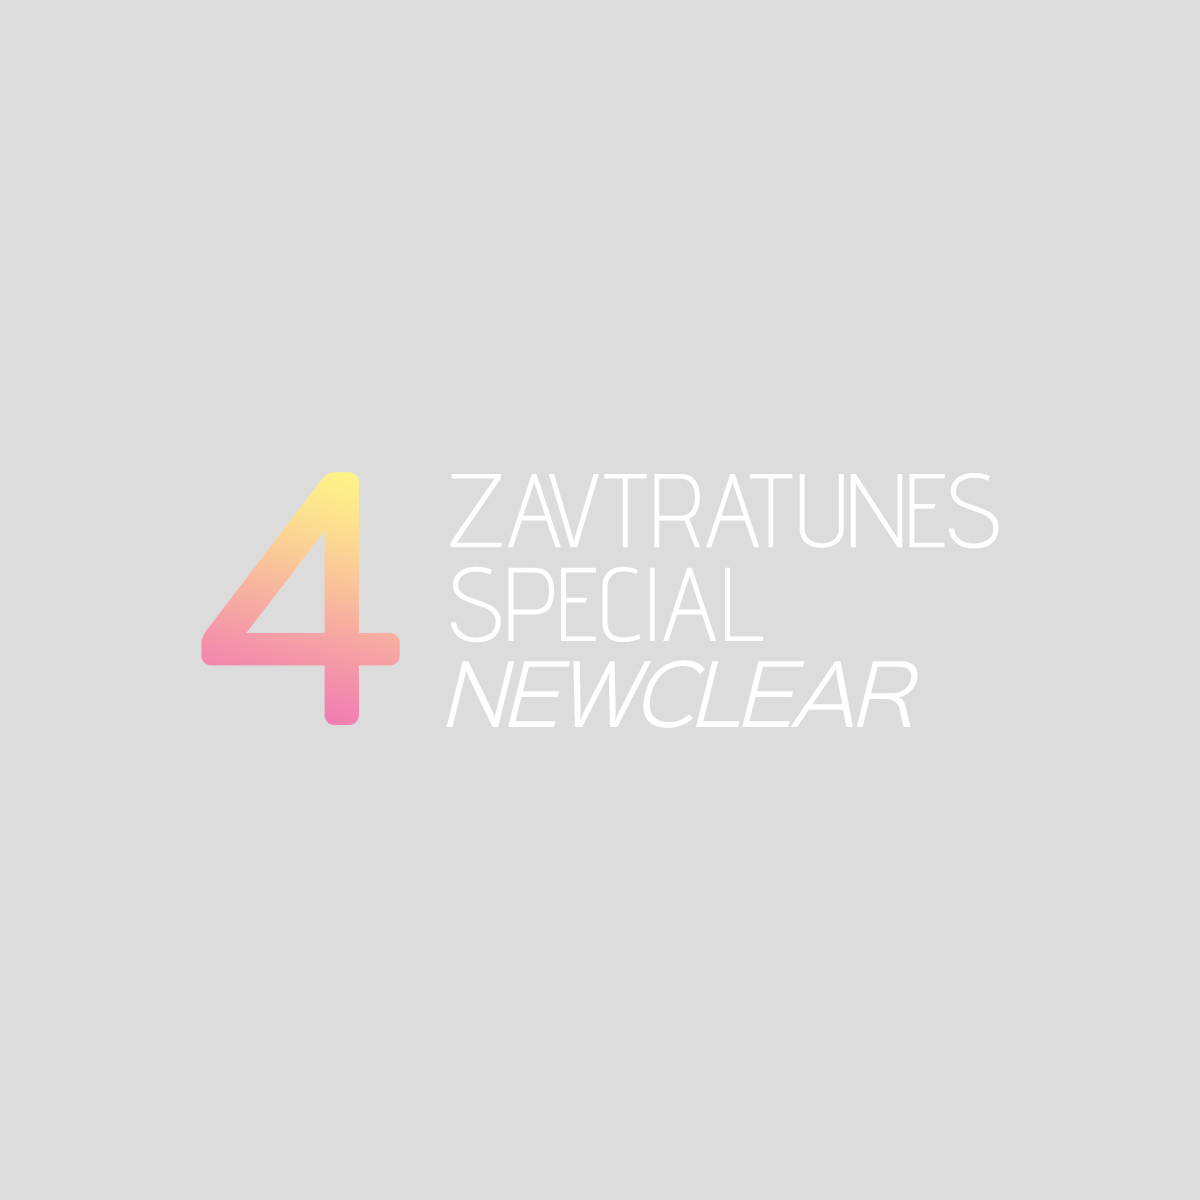 Zavtratunes Special #4 (feat. Newclear)